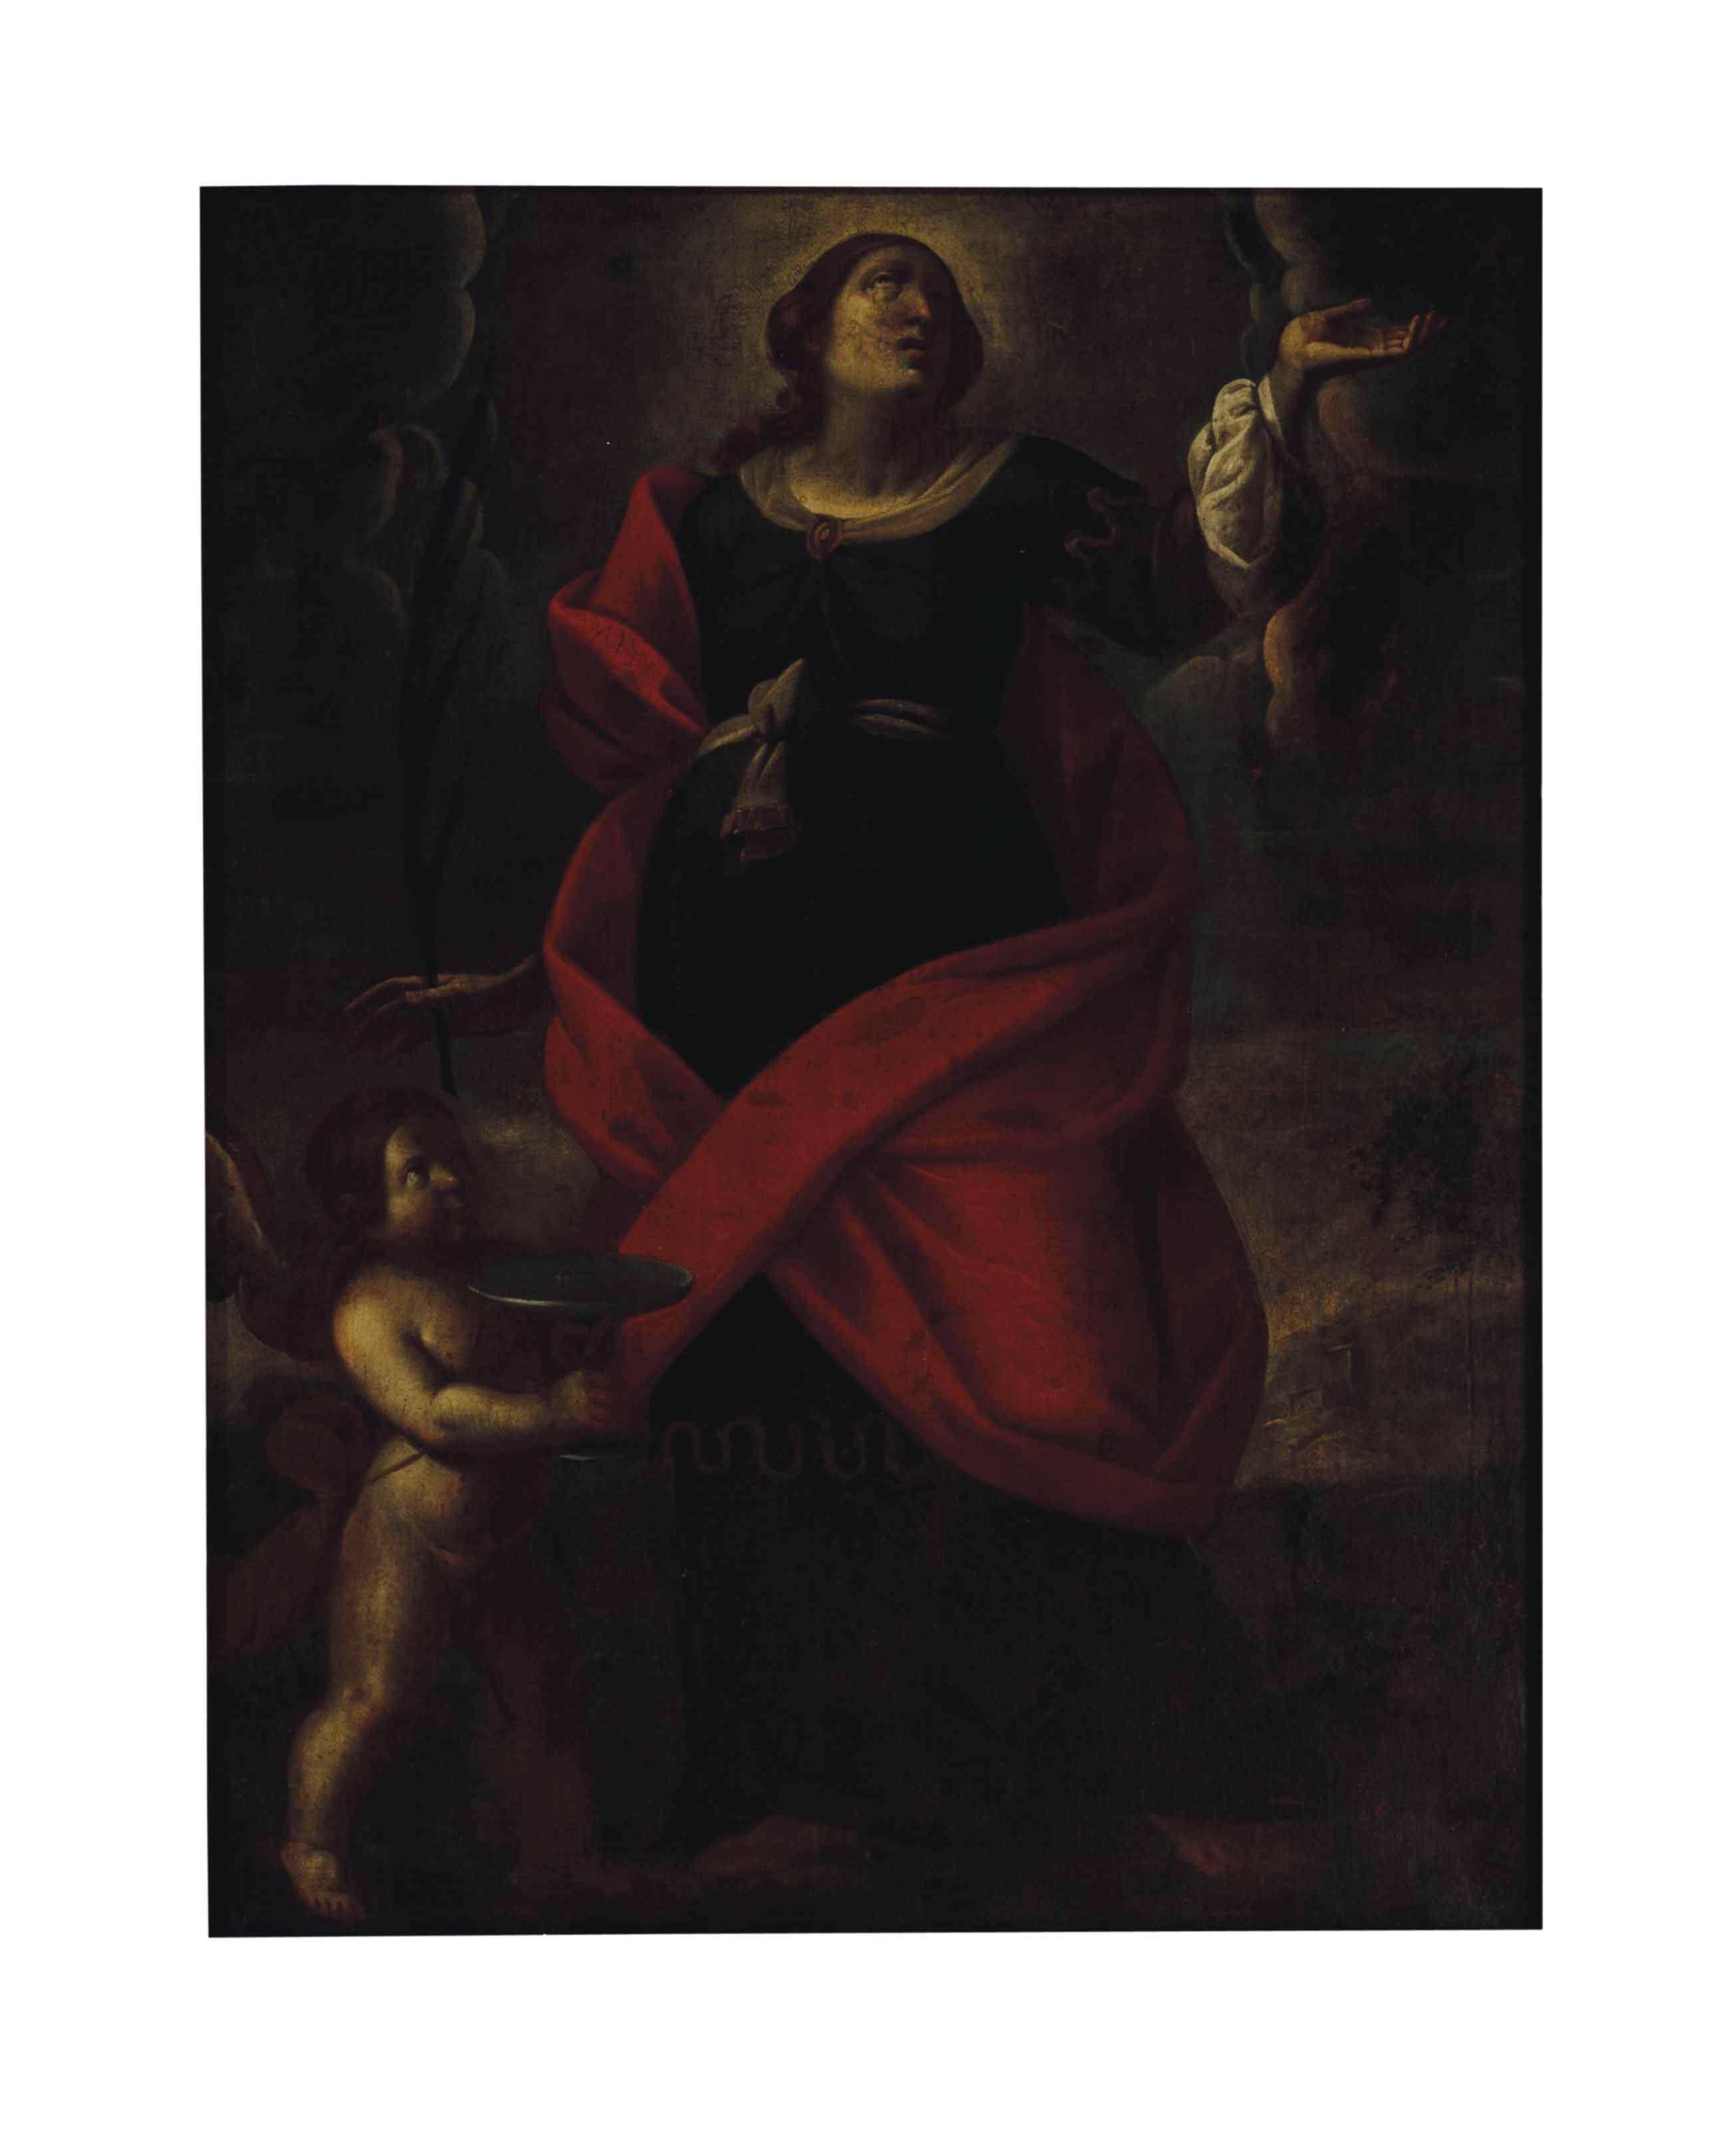 A female martyr saint, probably Saint Lucy, with an angel in attendance